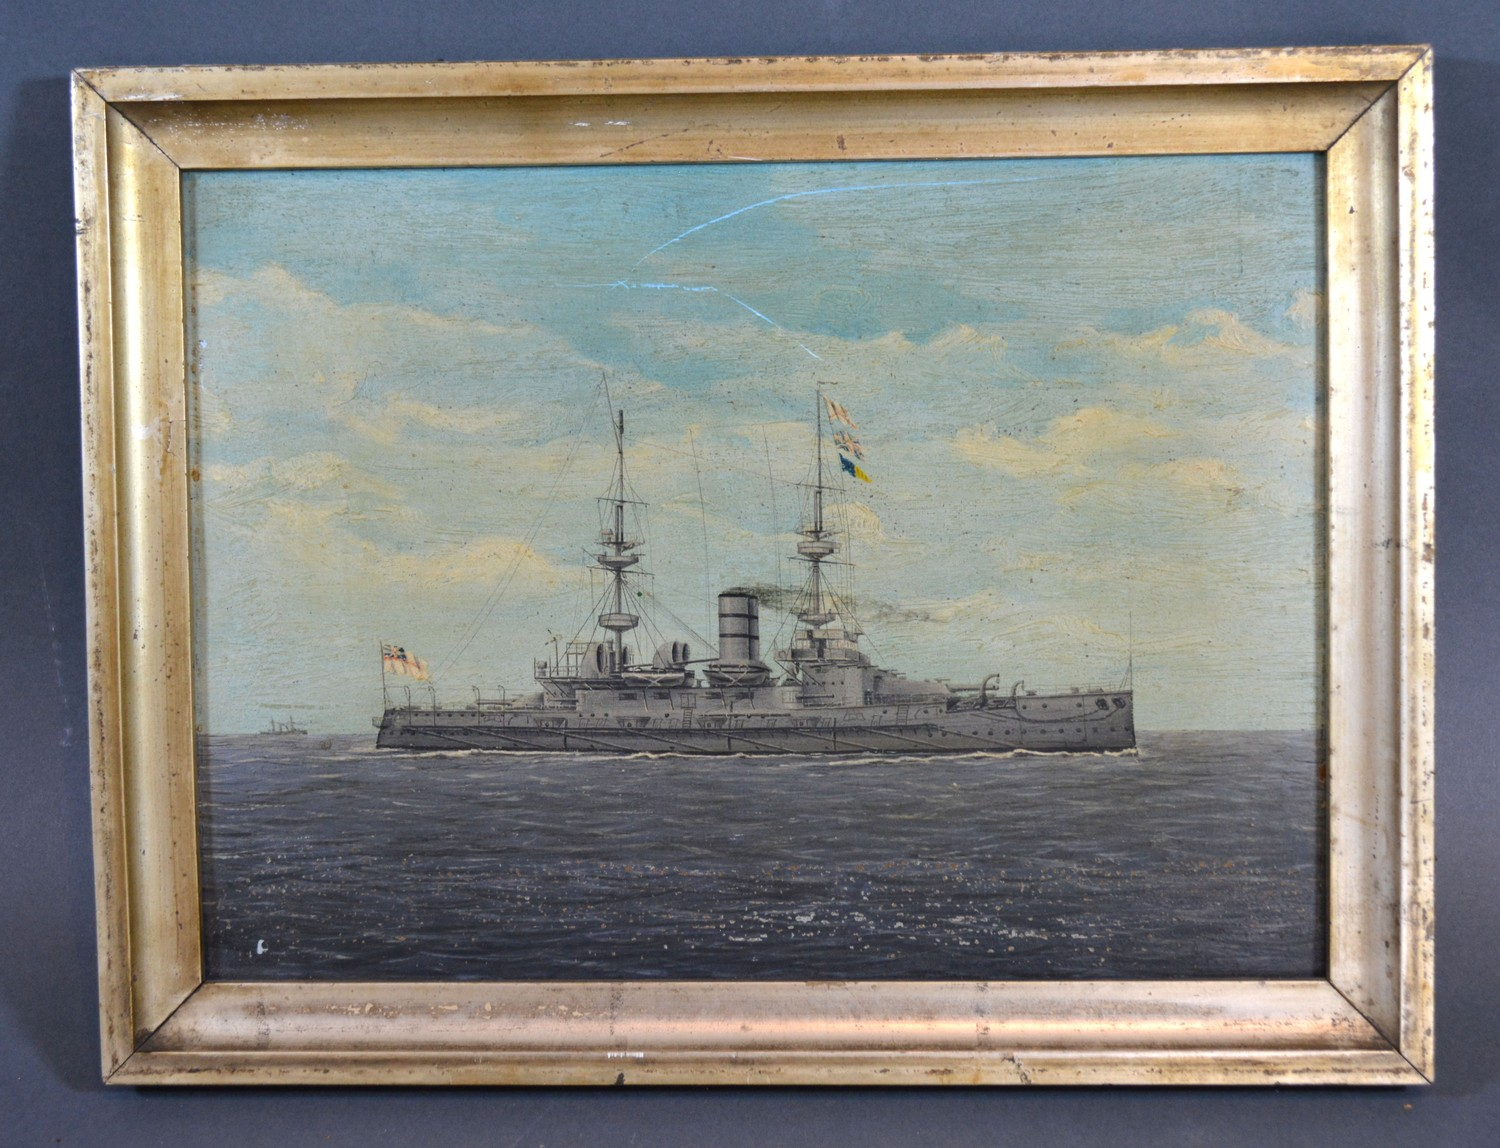 Early 20th Century English School, HMS Victorious, oil on board, 20 x 28 cms - Image 2 of 3